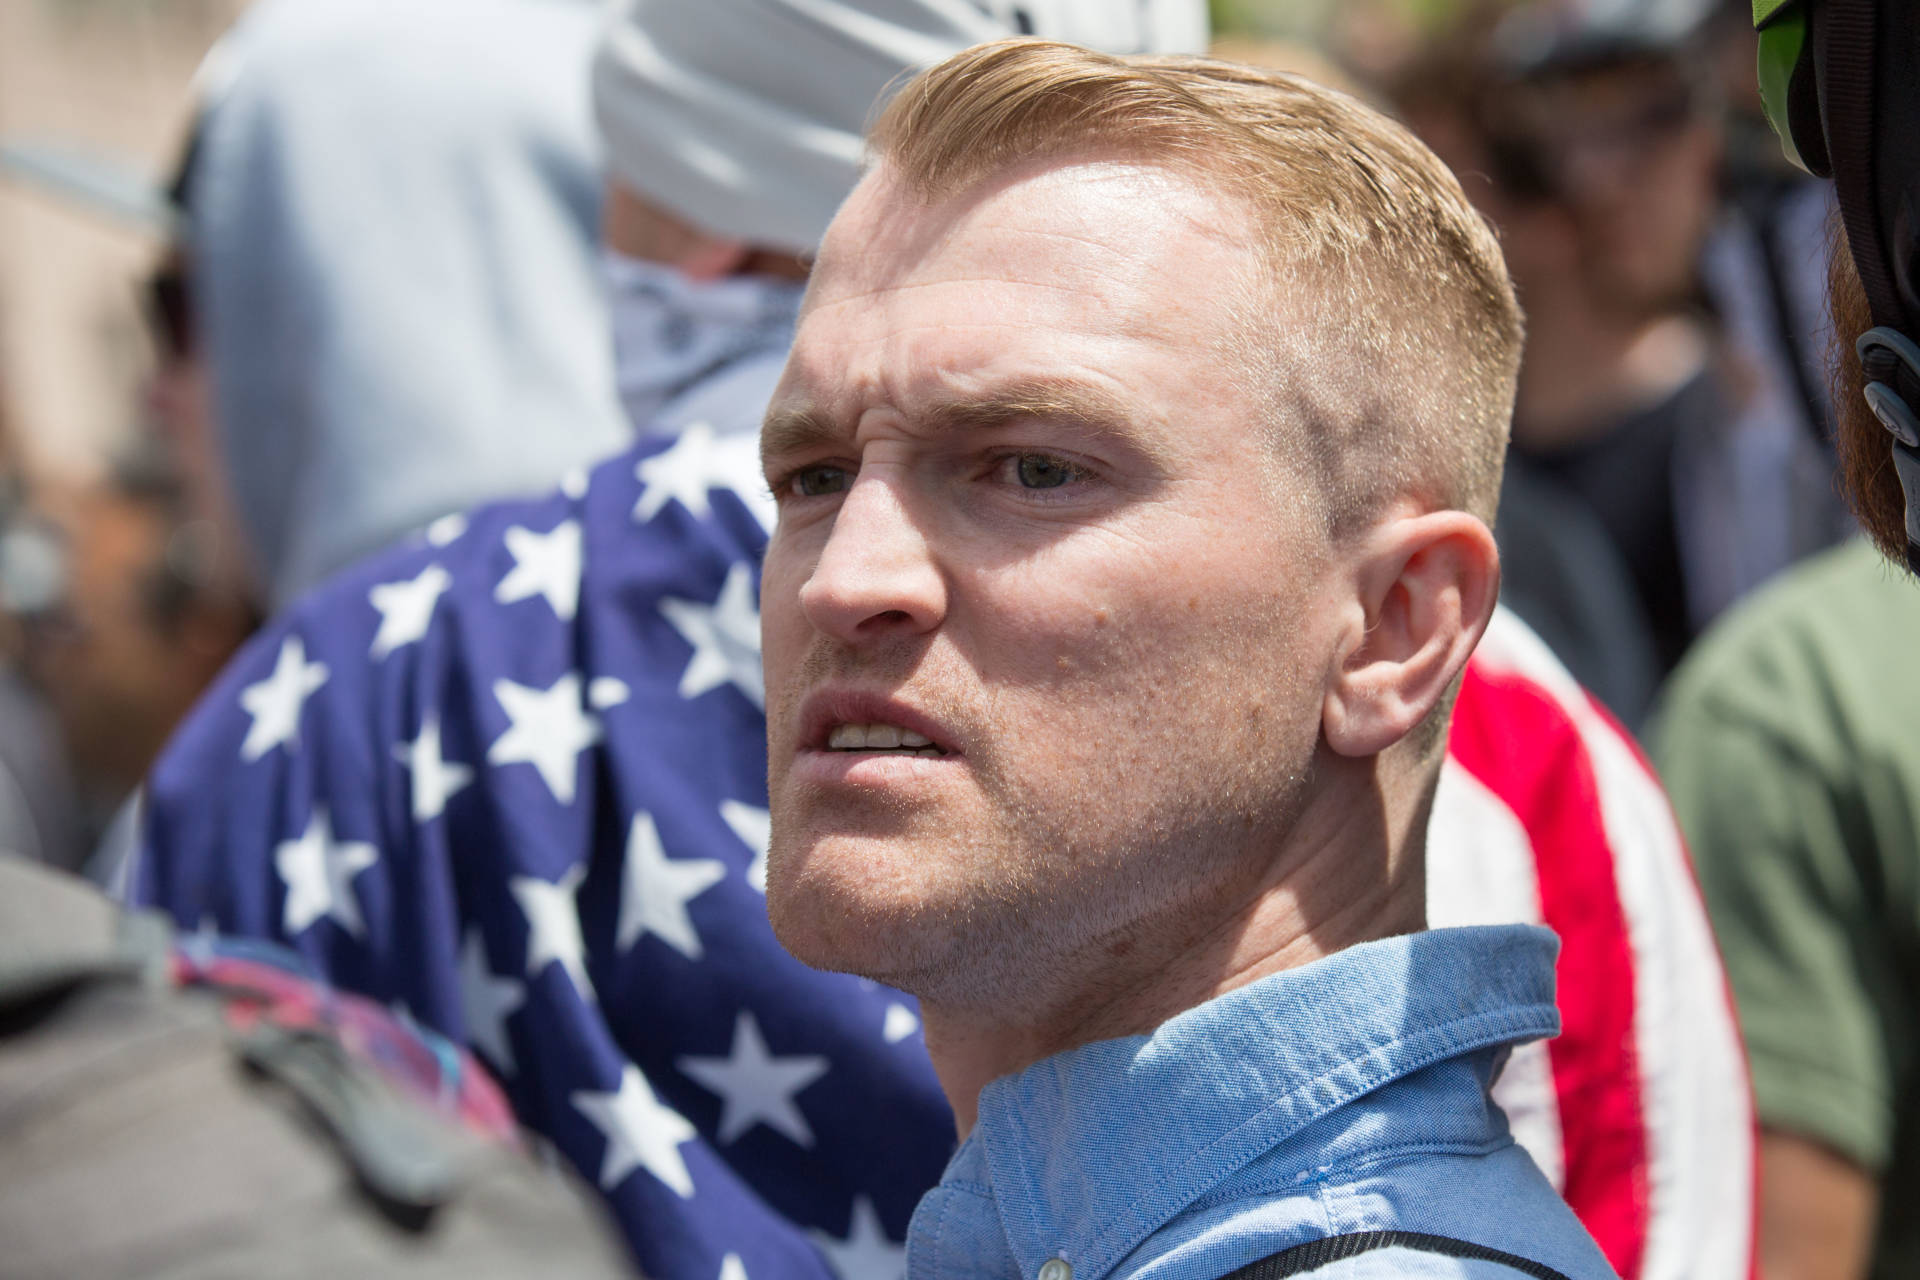 Nathan Damigo, the founder of white nationalist group Identity Evropa, at a right-wing rally in Berkeley on April 15, 2017. He helped organize the white supremacist rally in Charlottesville, Virginia, where one counterprotester was killed on Saturday. Bert Johnson/KQED